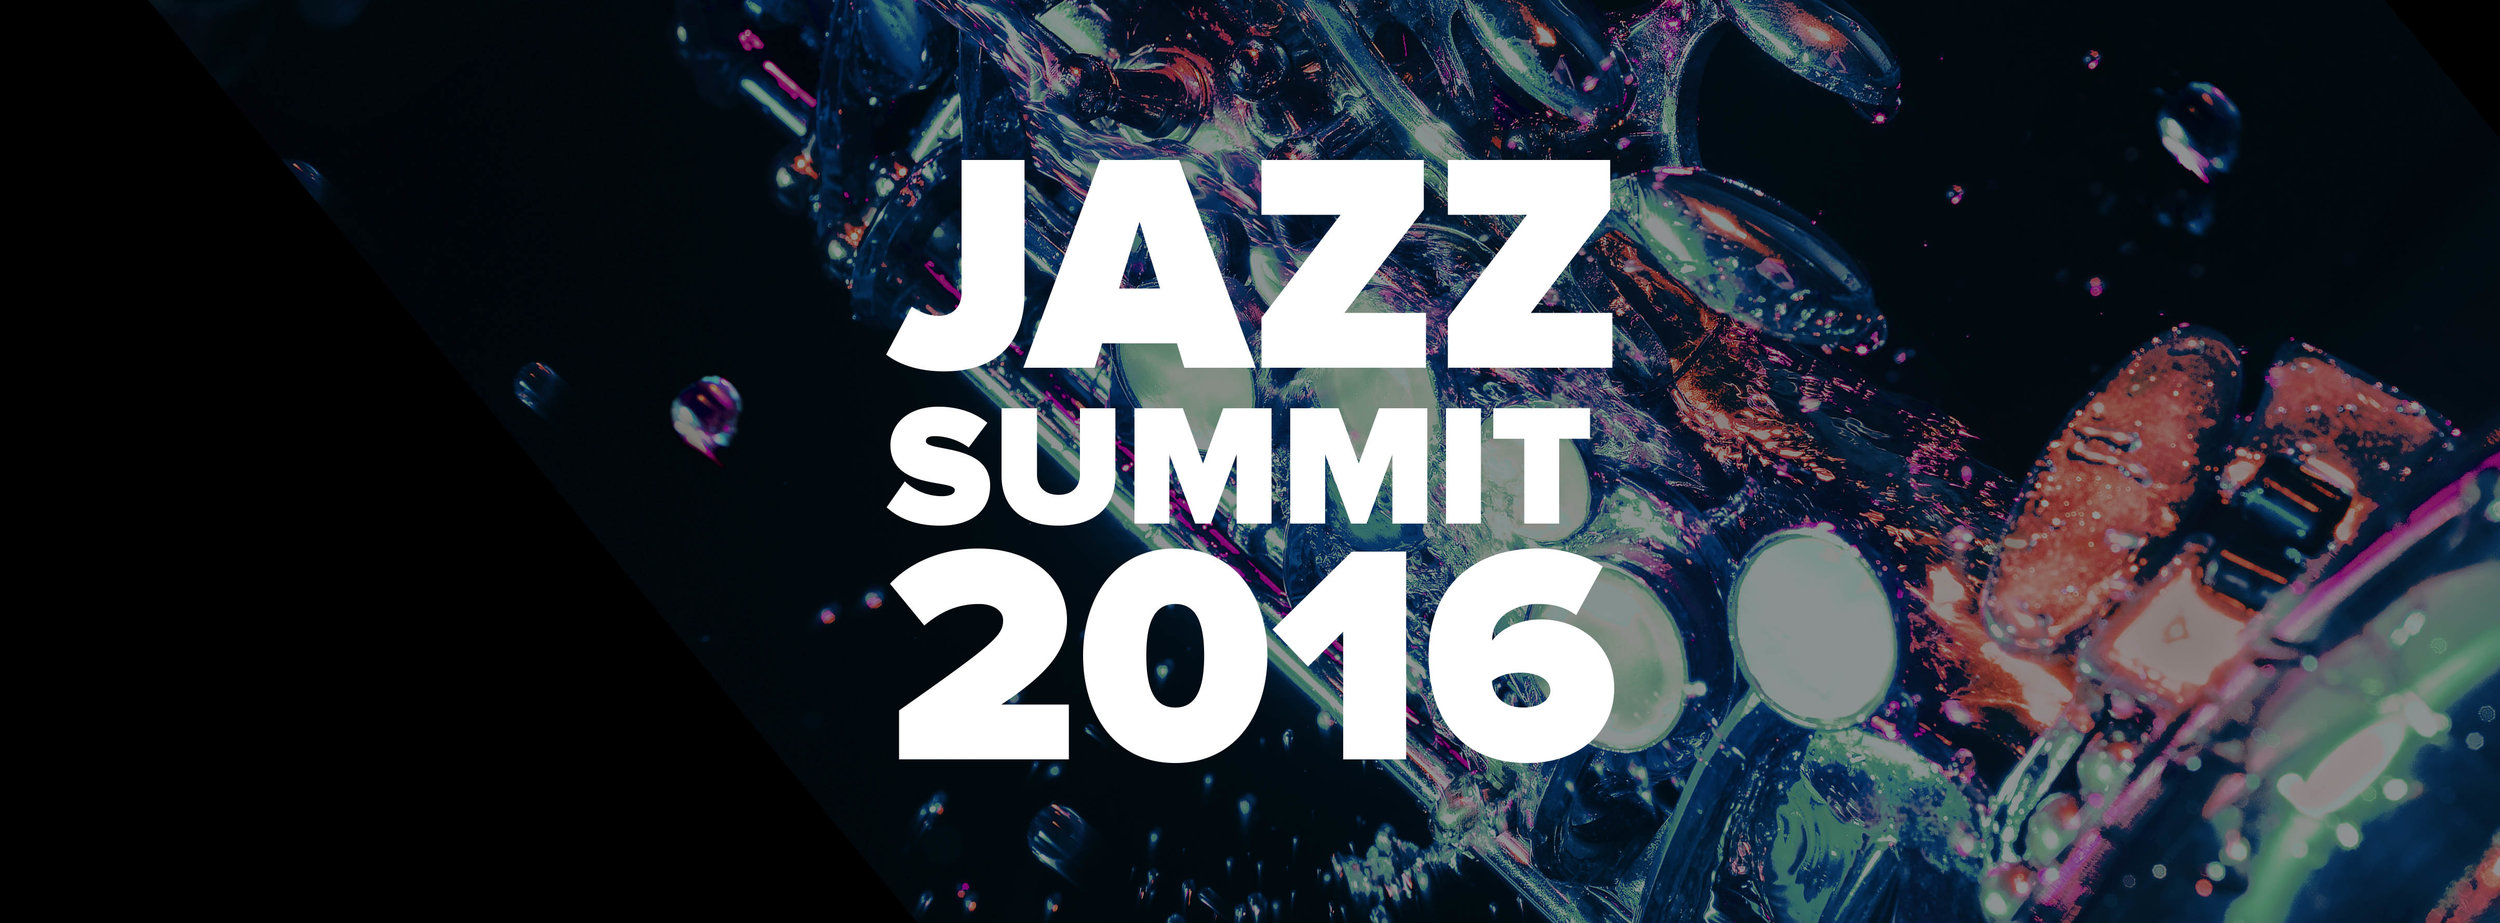 Jazz-Summit-1.jpg